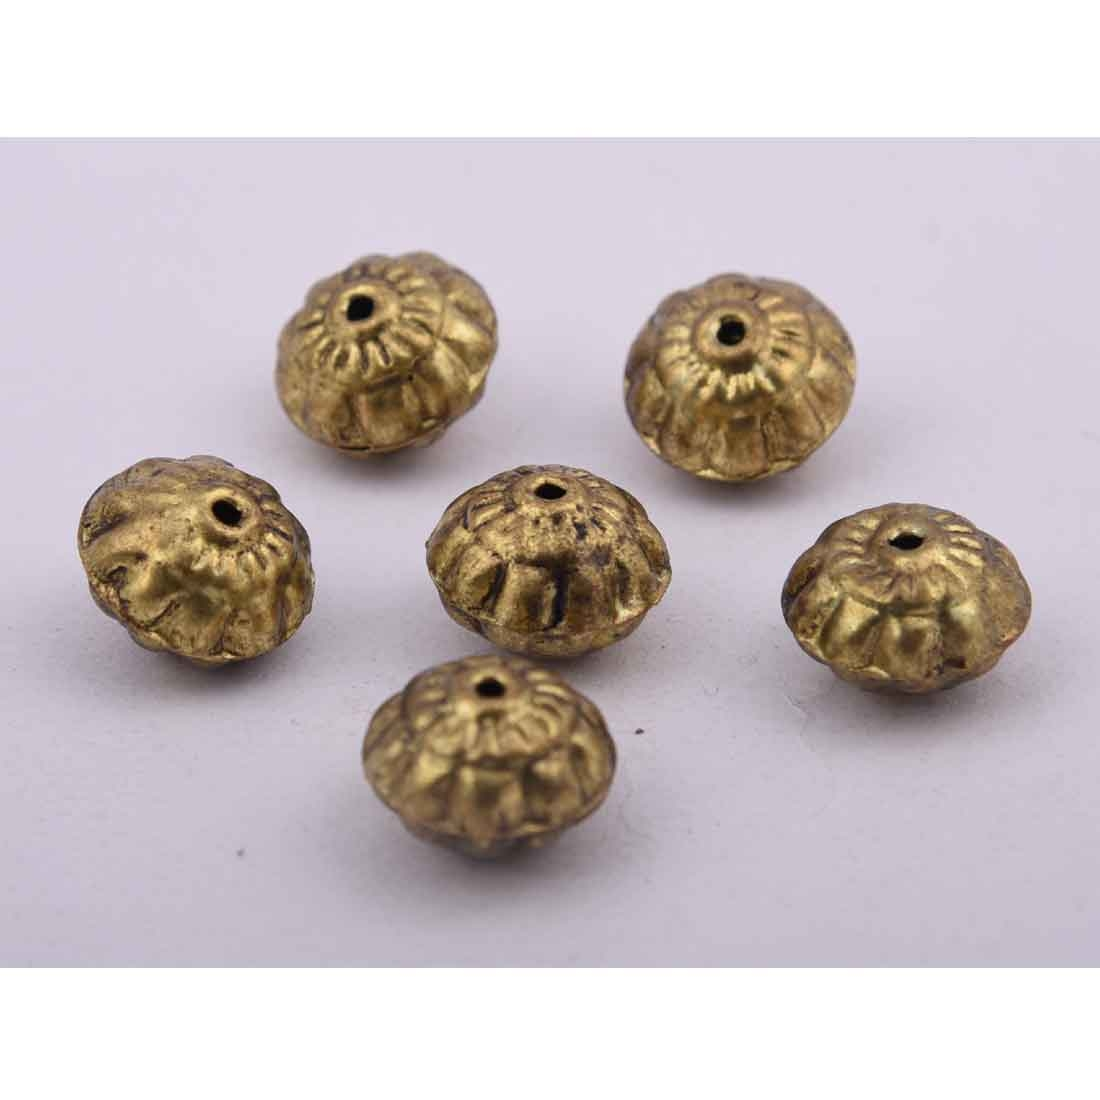 Beads India 1700054  Handcrafted Metal Beads/Discounts Above 500 pcs